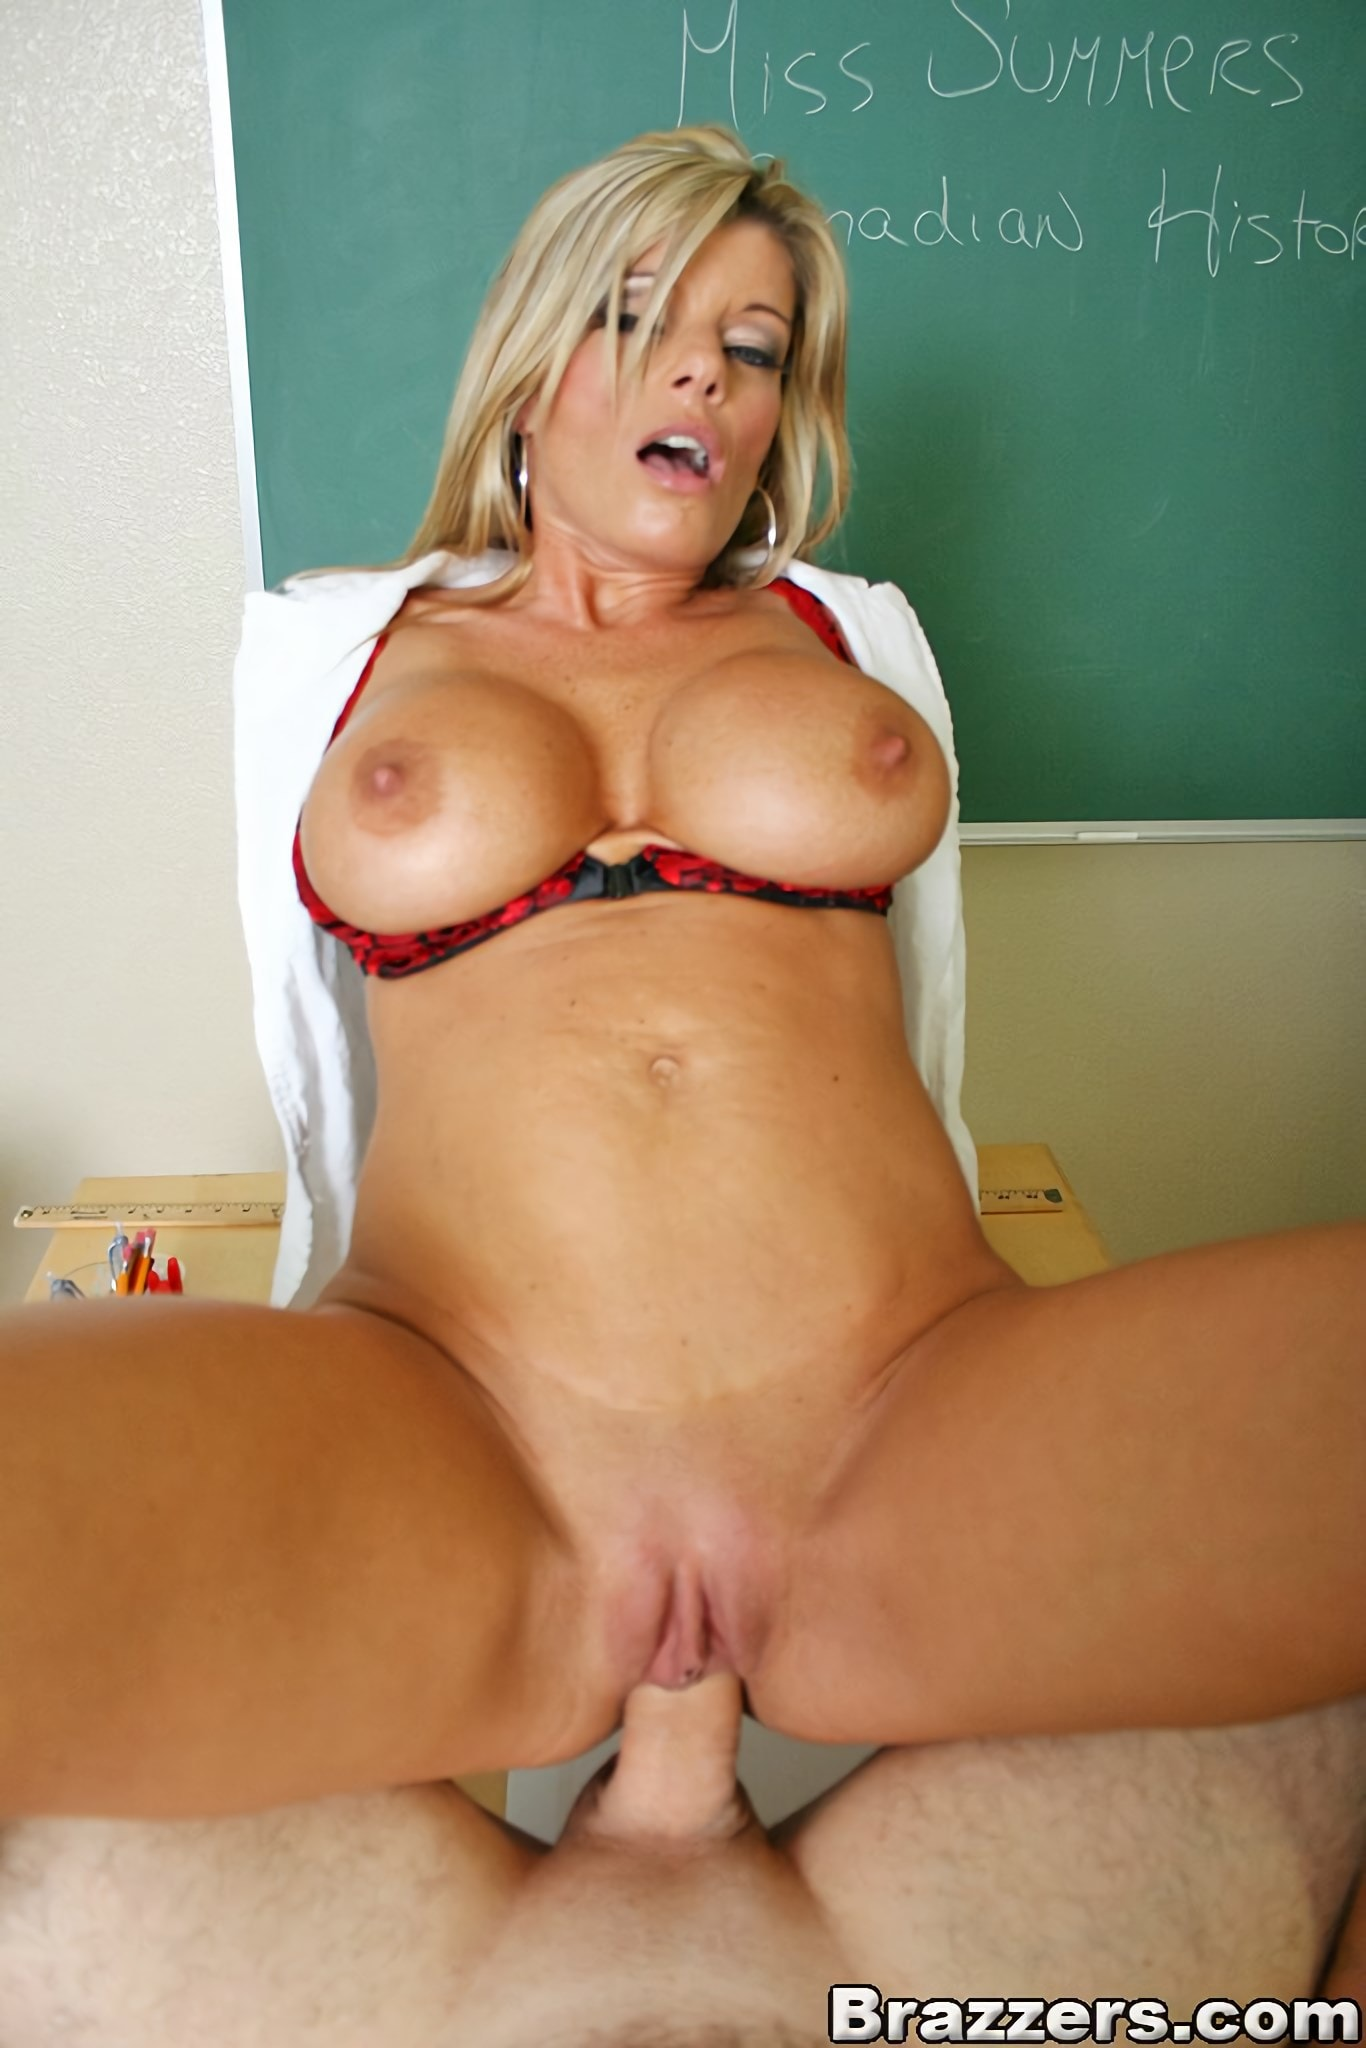 Kristal Summers - The Teachers Pet | Picture (15)